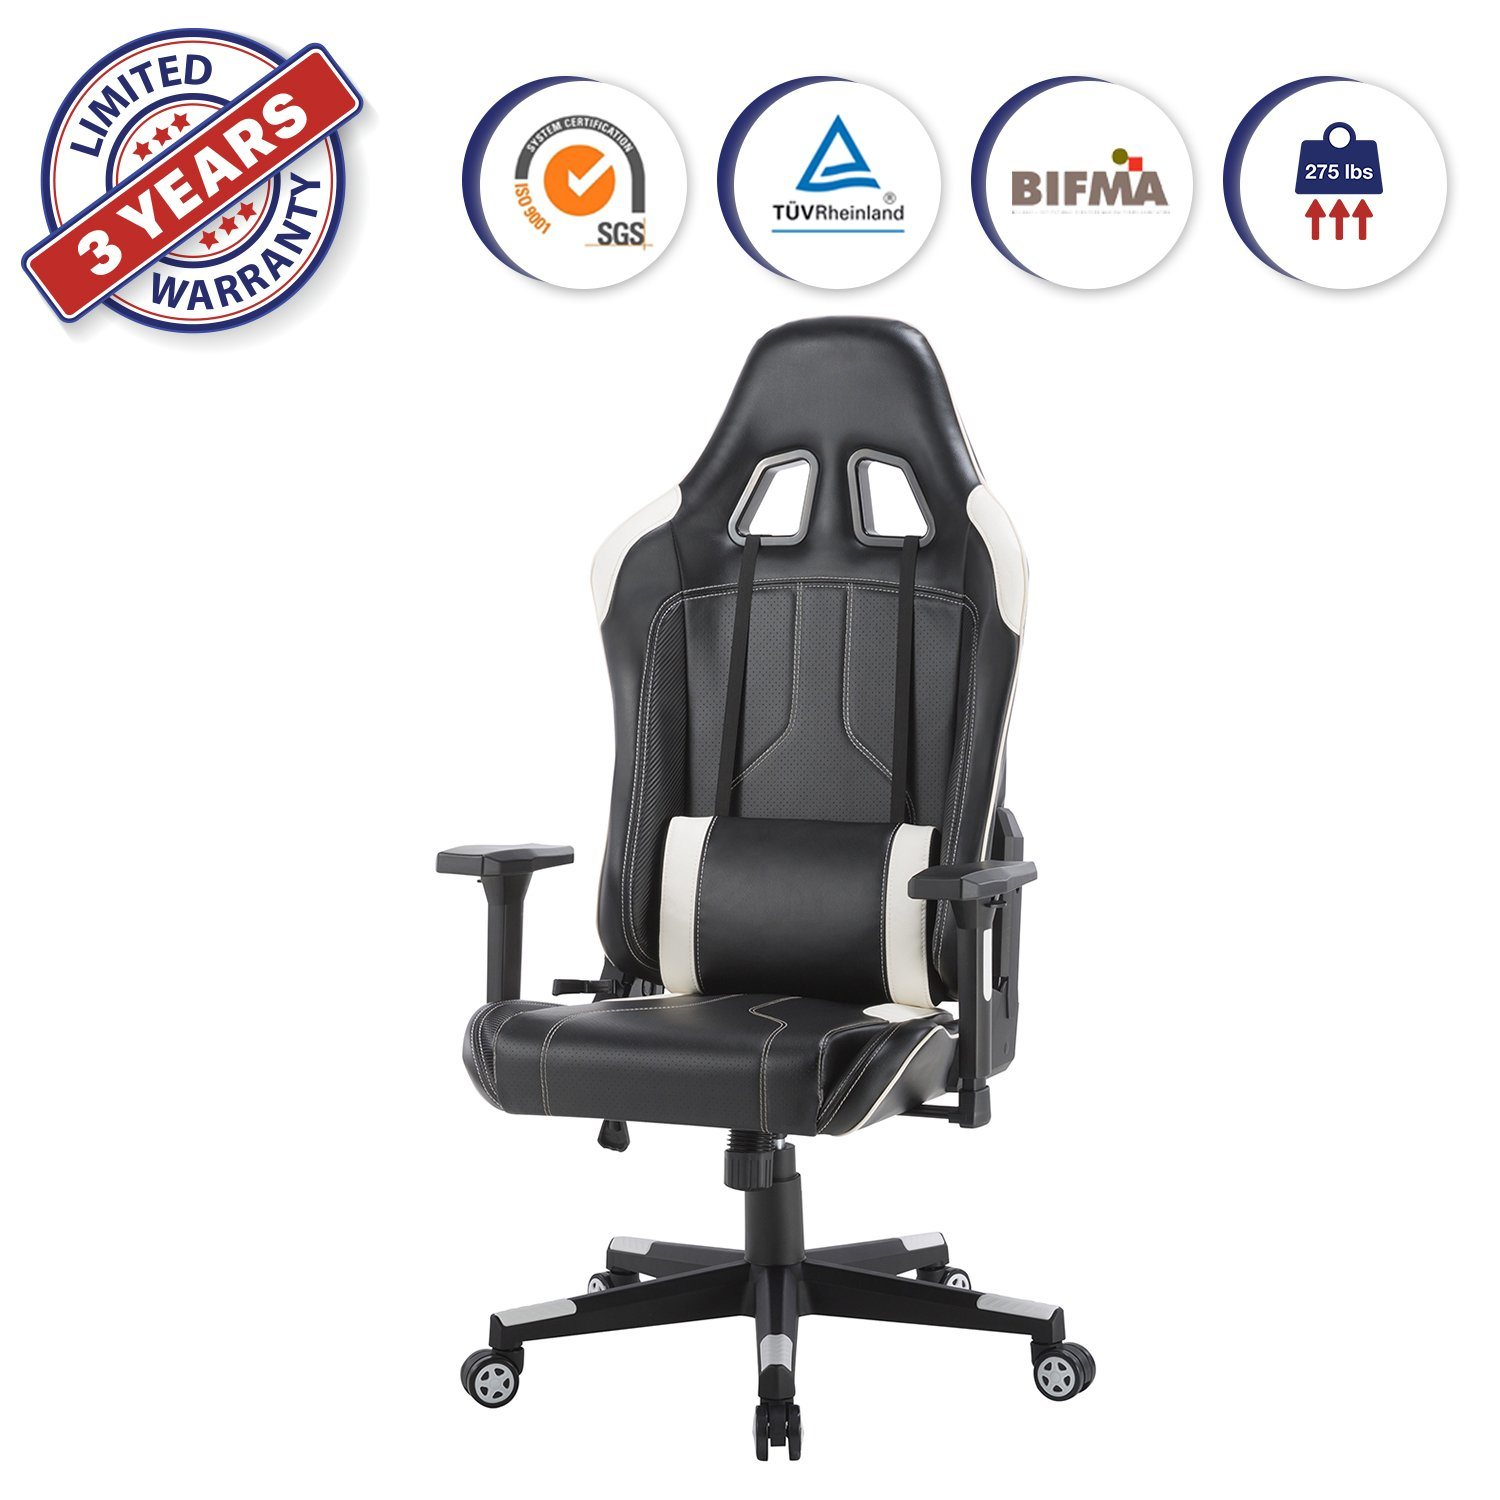 China High Back Adjustable Pu Leather Ergonomic Racing Gaming Chair Swivel Chairs For Home Office Computer Seat Recliner Yolo China Gaming Chair Pu Leather Chair